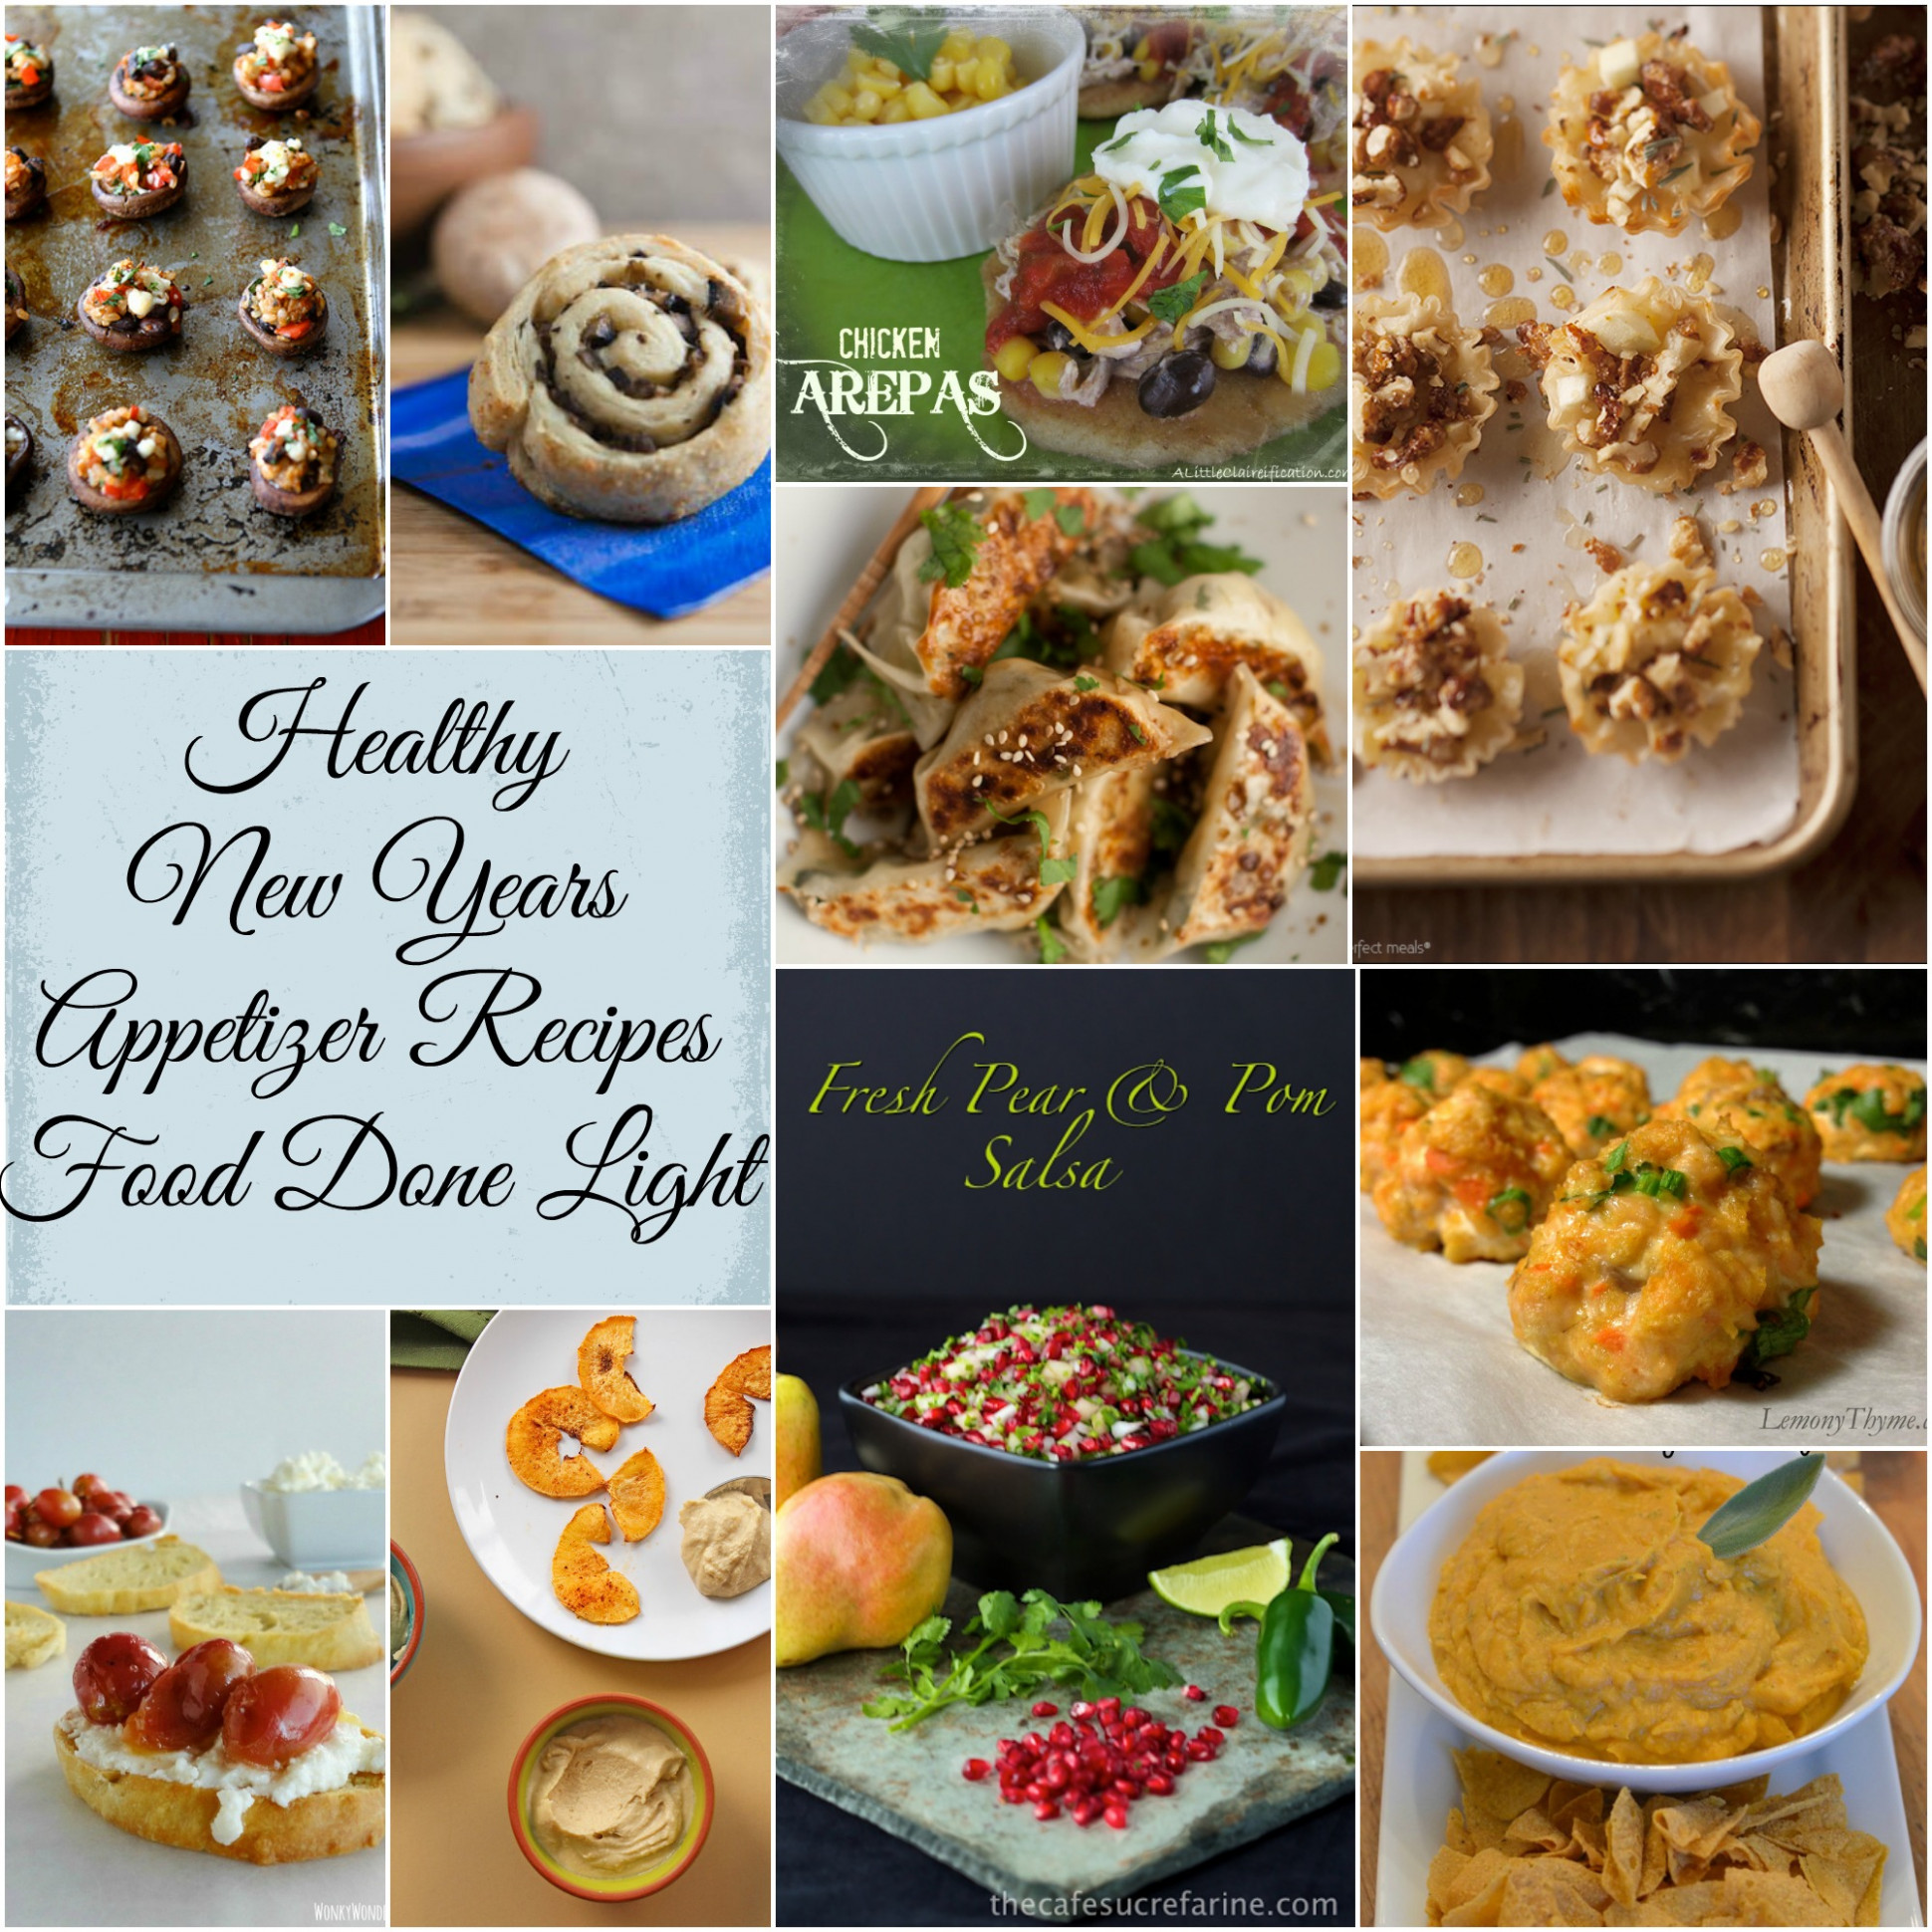 Healthy New Years Appetizers & Small Bites Recipes | Food ...